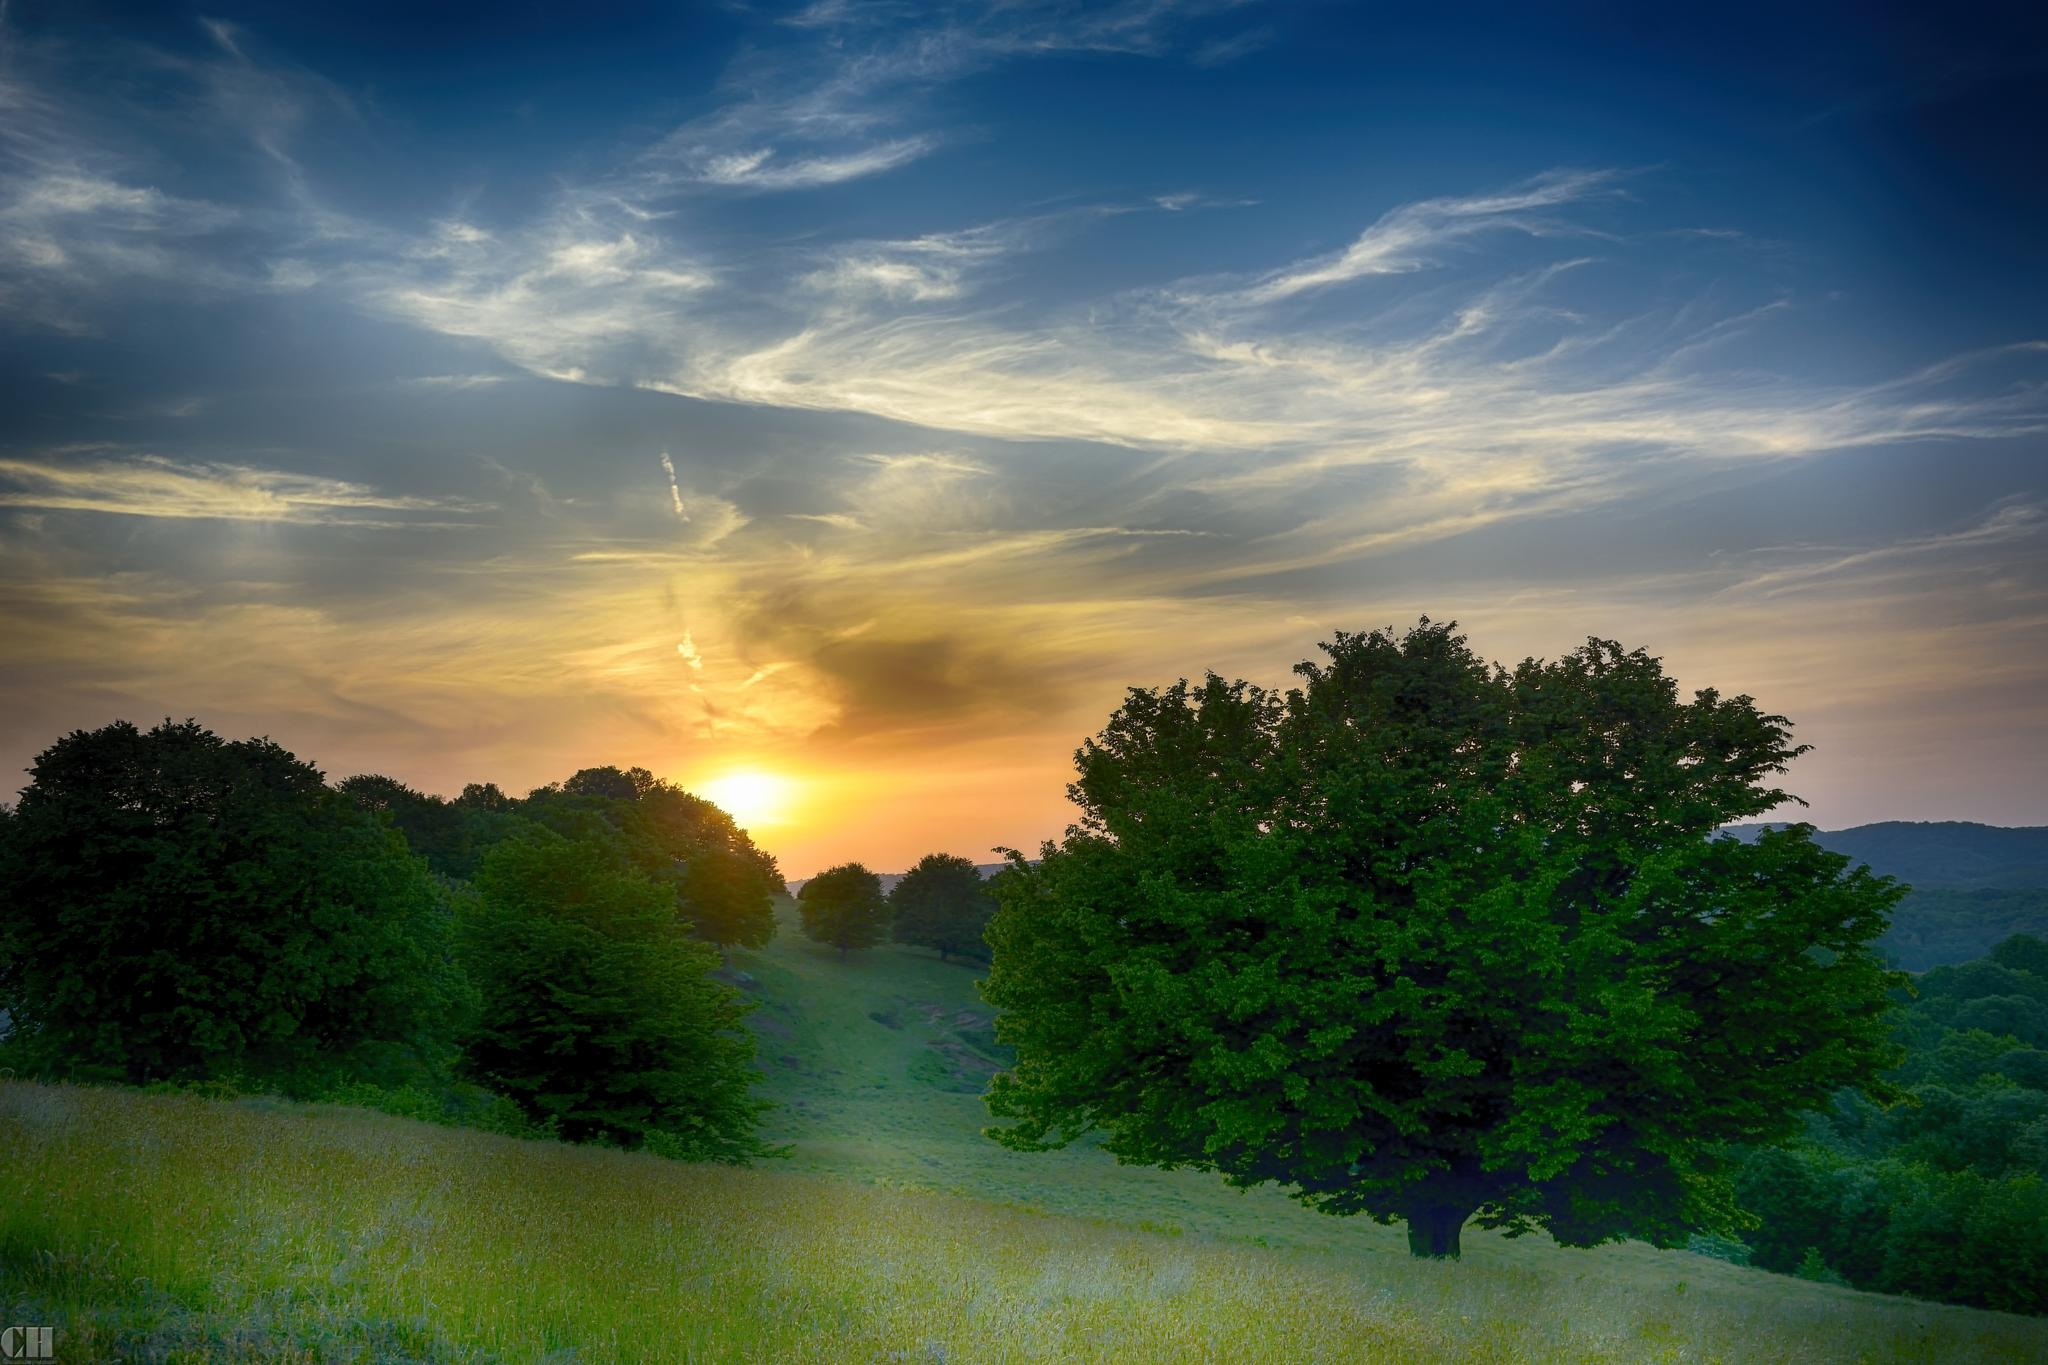 sunset on hills by constantin.hurghea